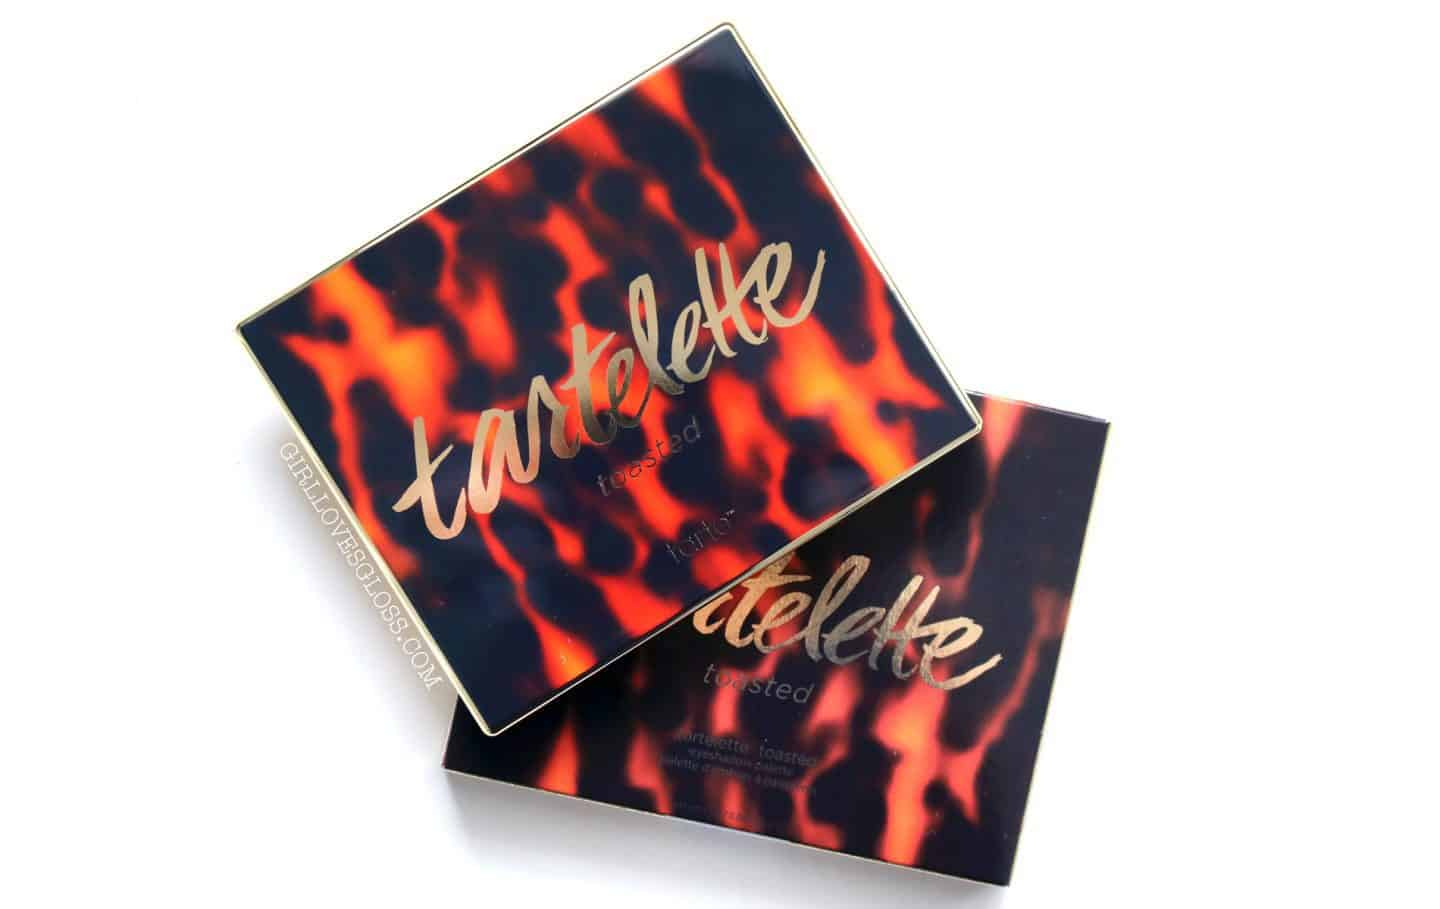 Tarte Toasted Palette | Just Another Warm Palette?